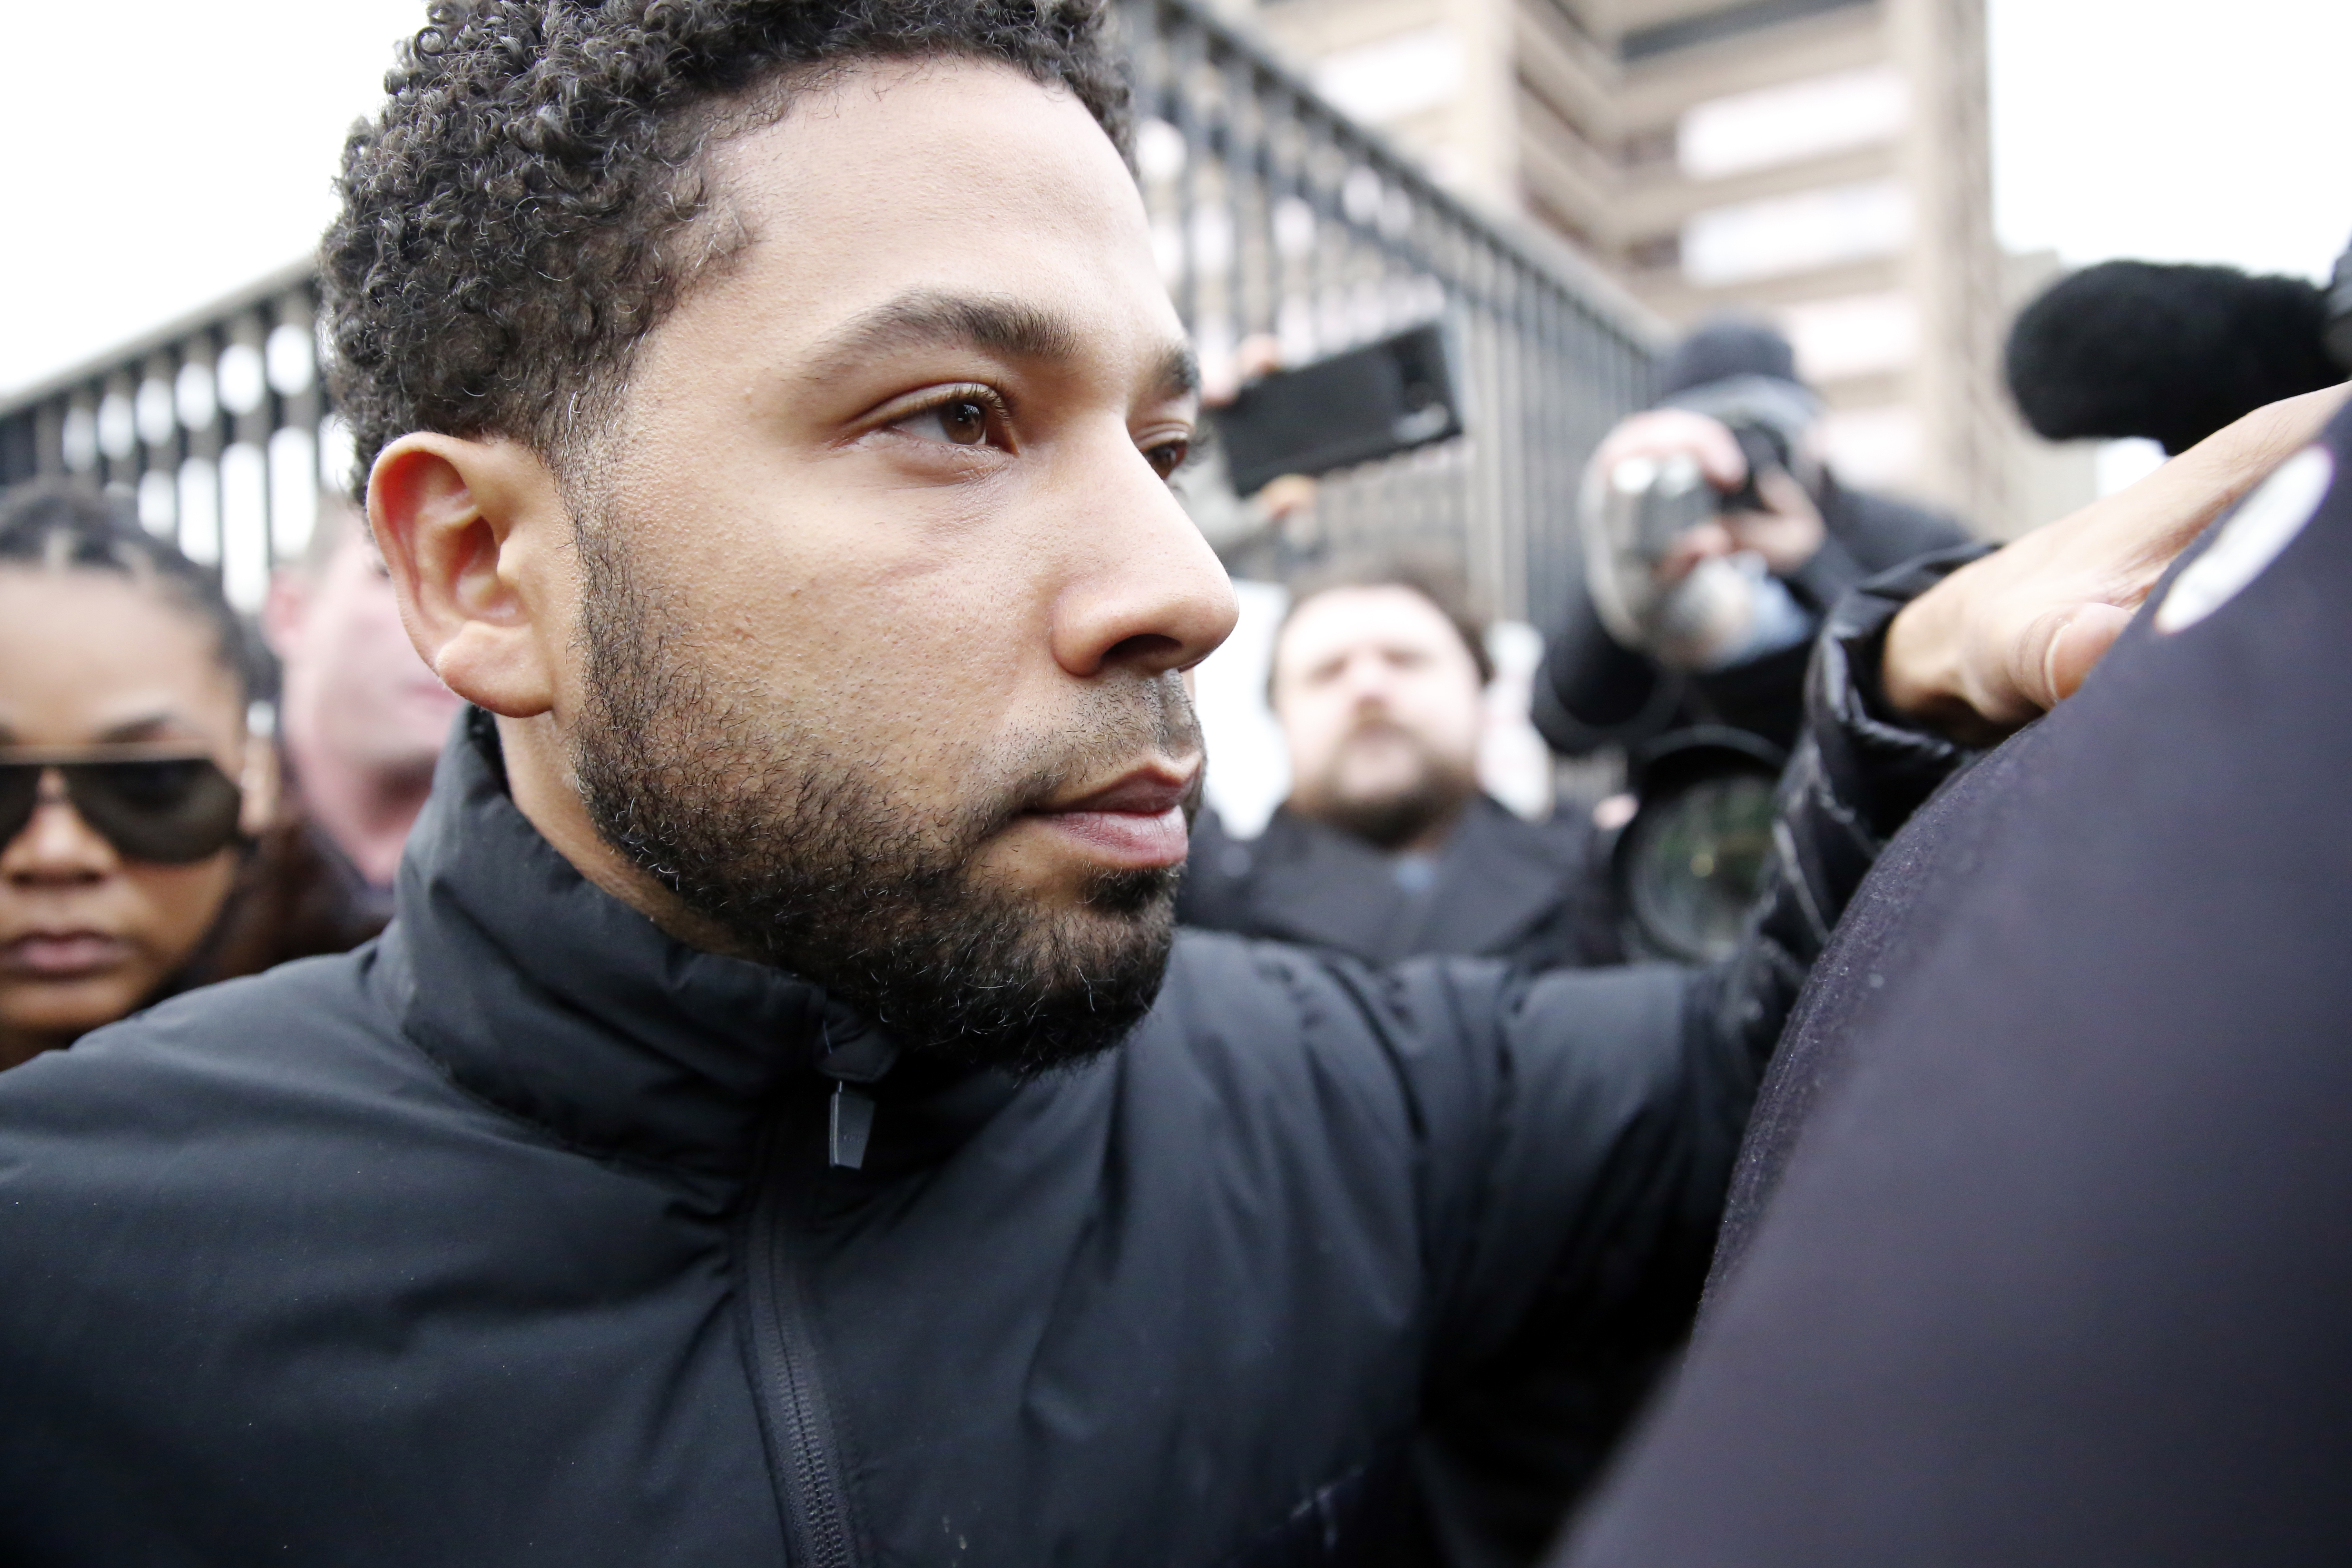 Empire will cut Jussie Smollett's scenes from the rest of the season